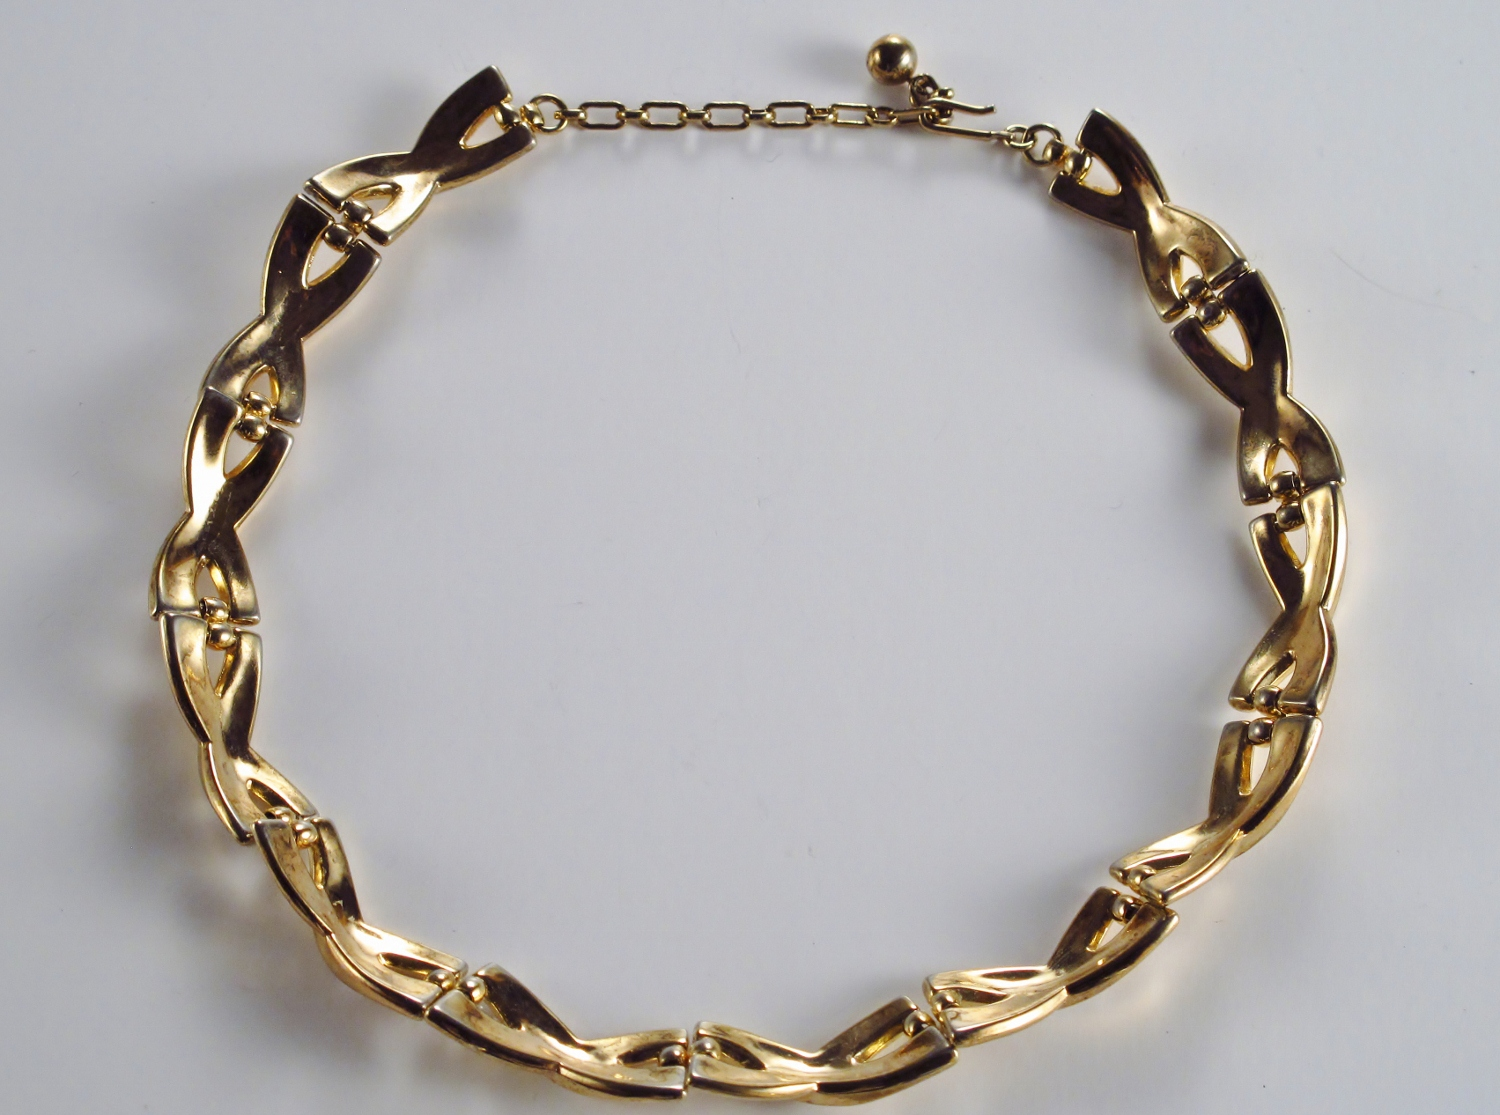 Trifari Vintage Modernist Necklace By Alfred Philippe 1940